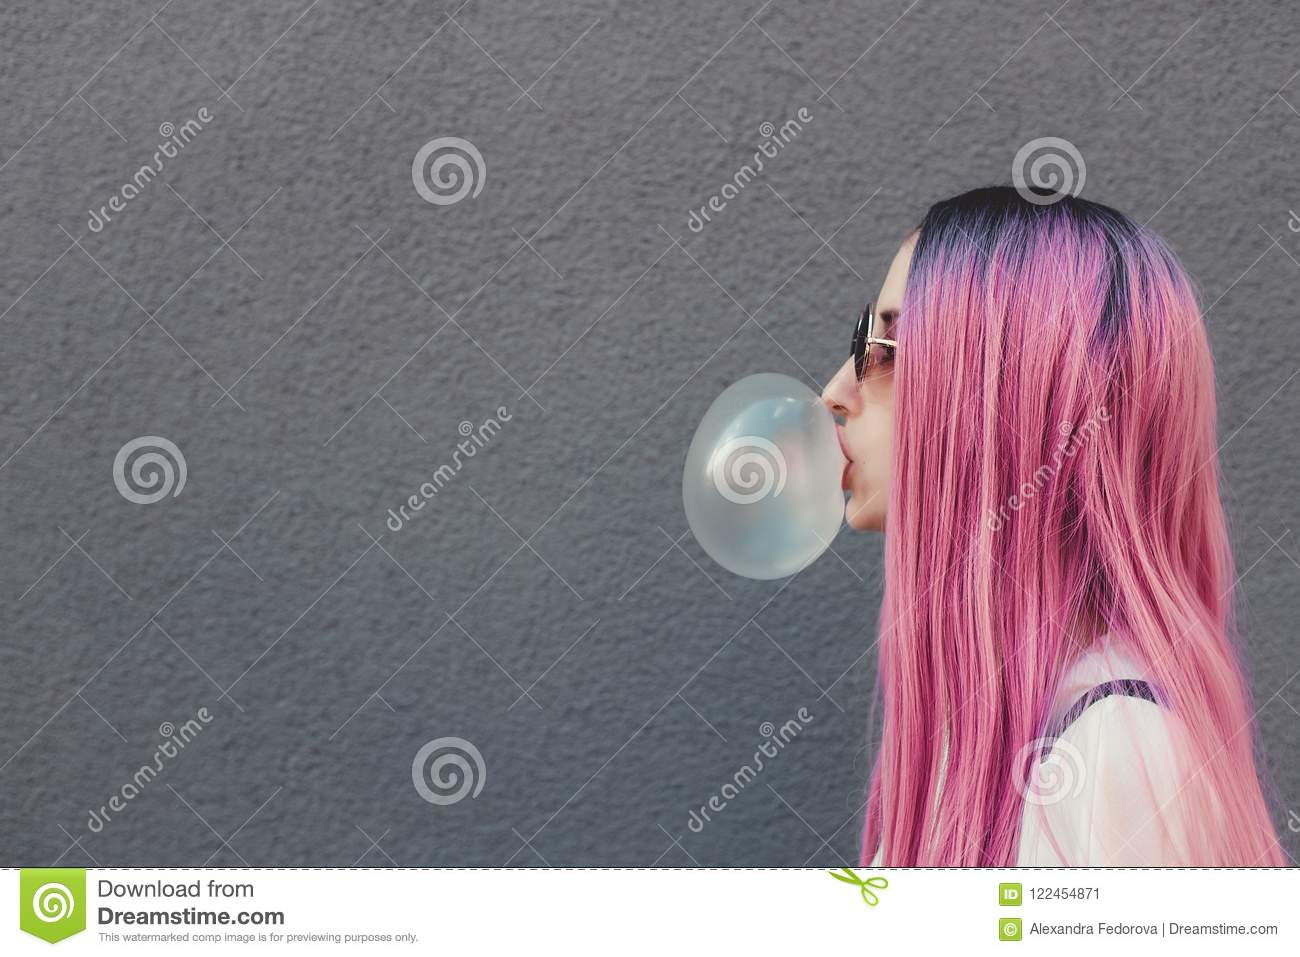 Stylish young hipster woman with long pink hair blowing a bubble with bubble gum.